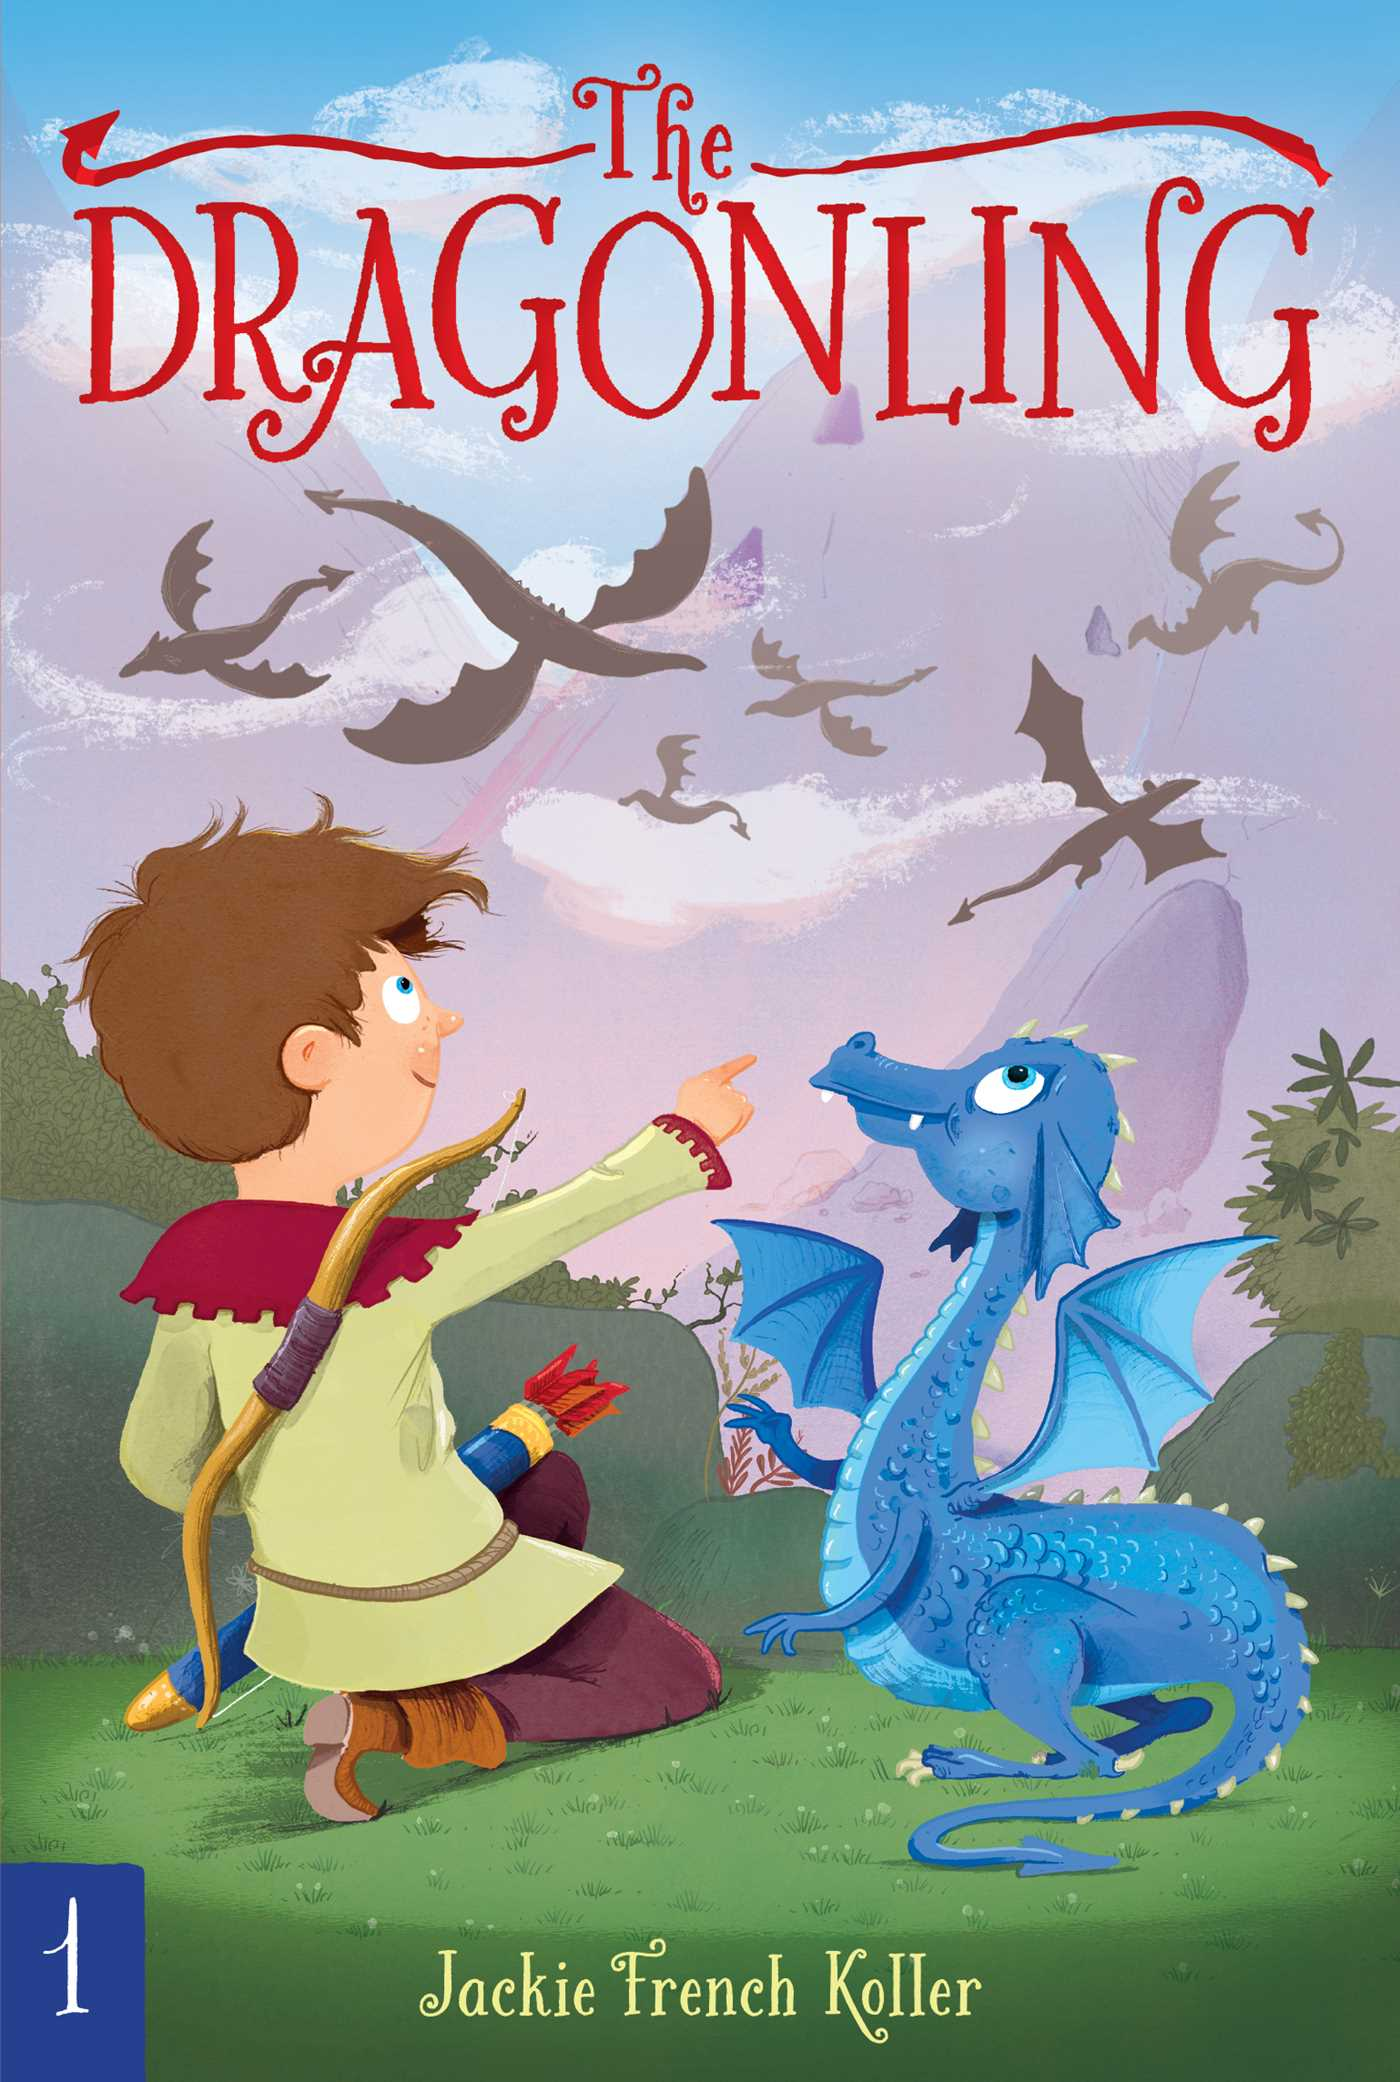 The dragonling 9781534400610 hr